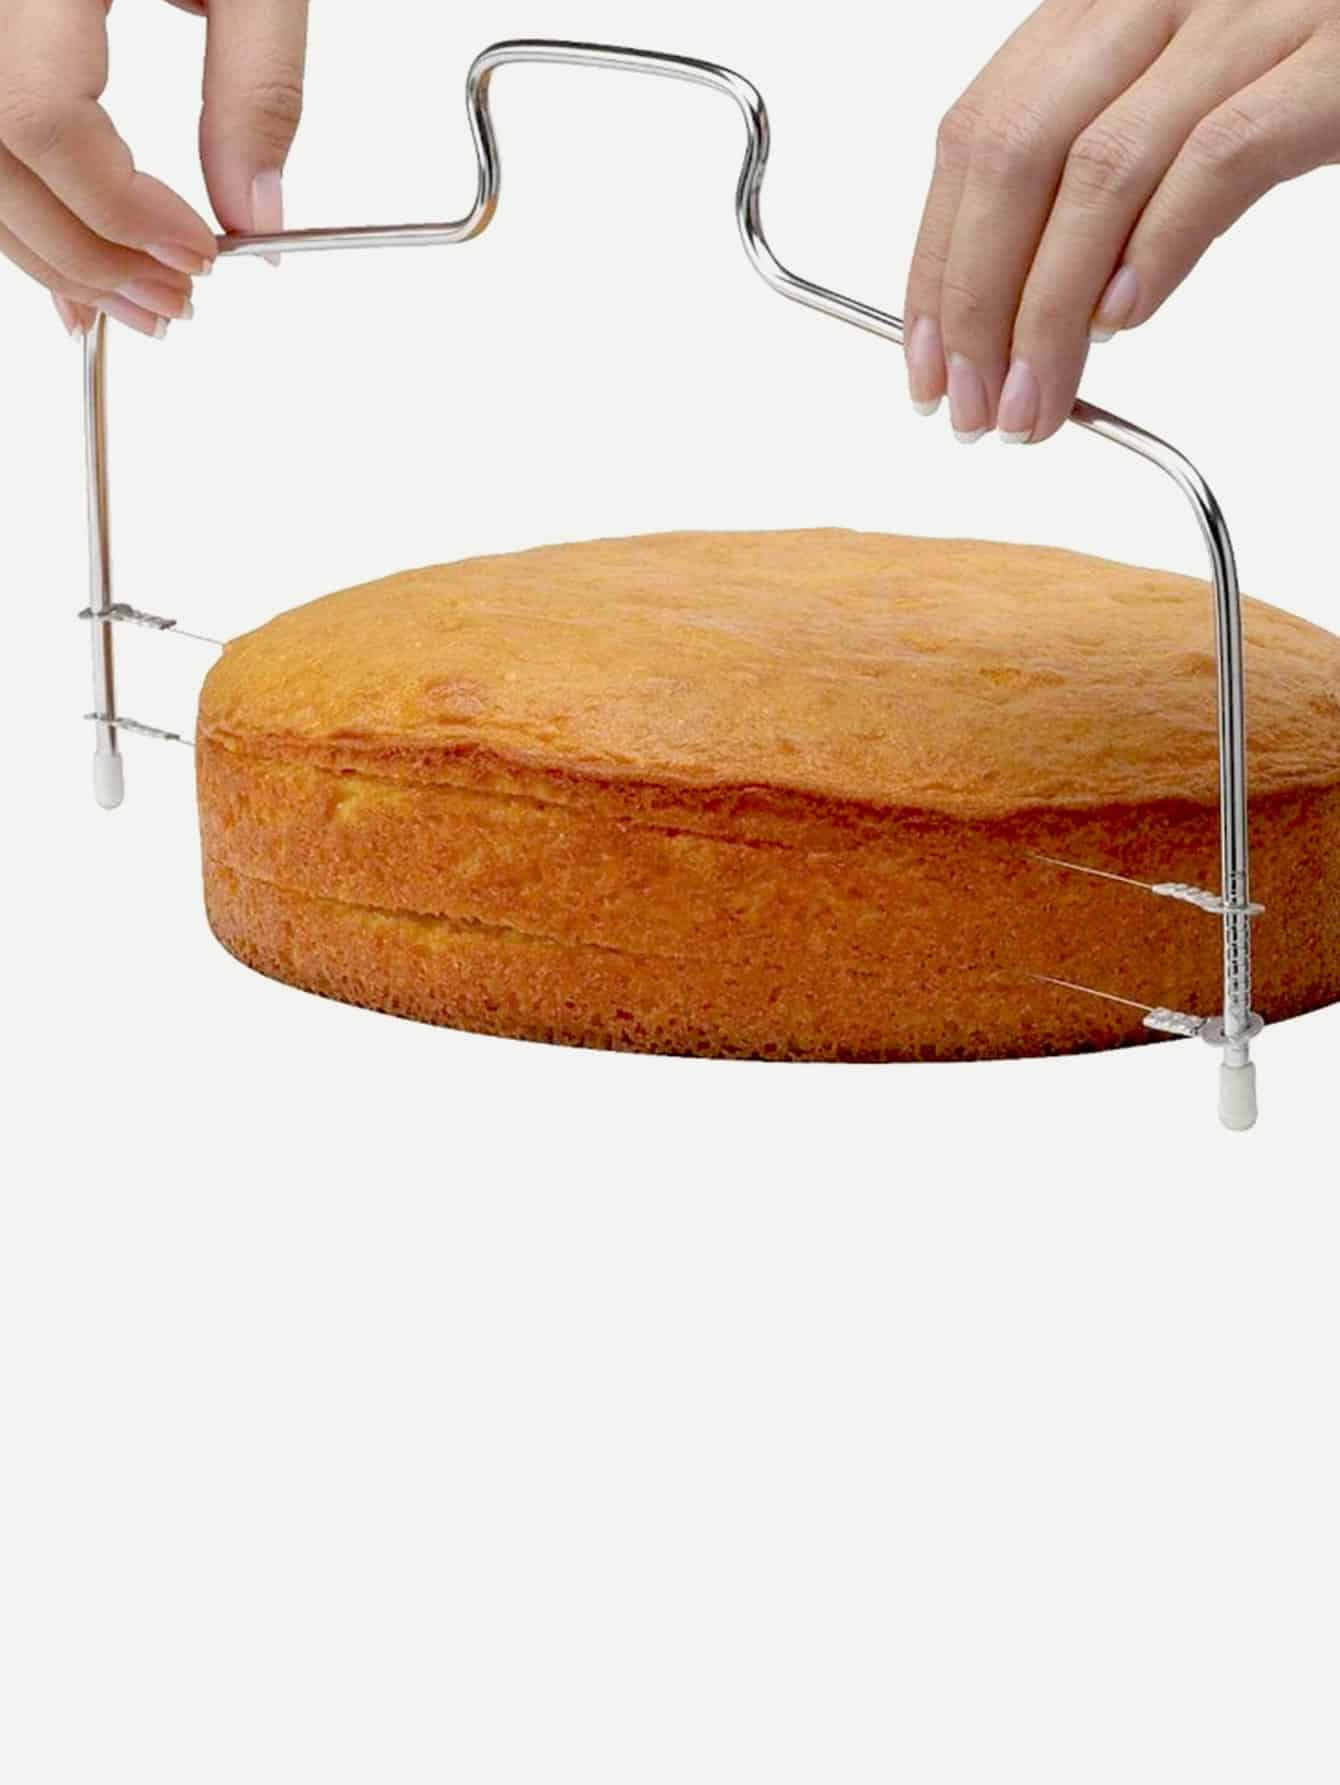 Stainless Steel Cake Cutter stainless steel cake cutter